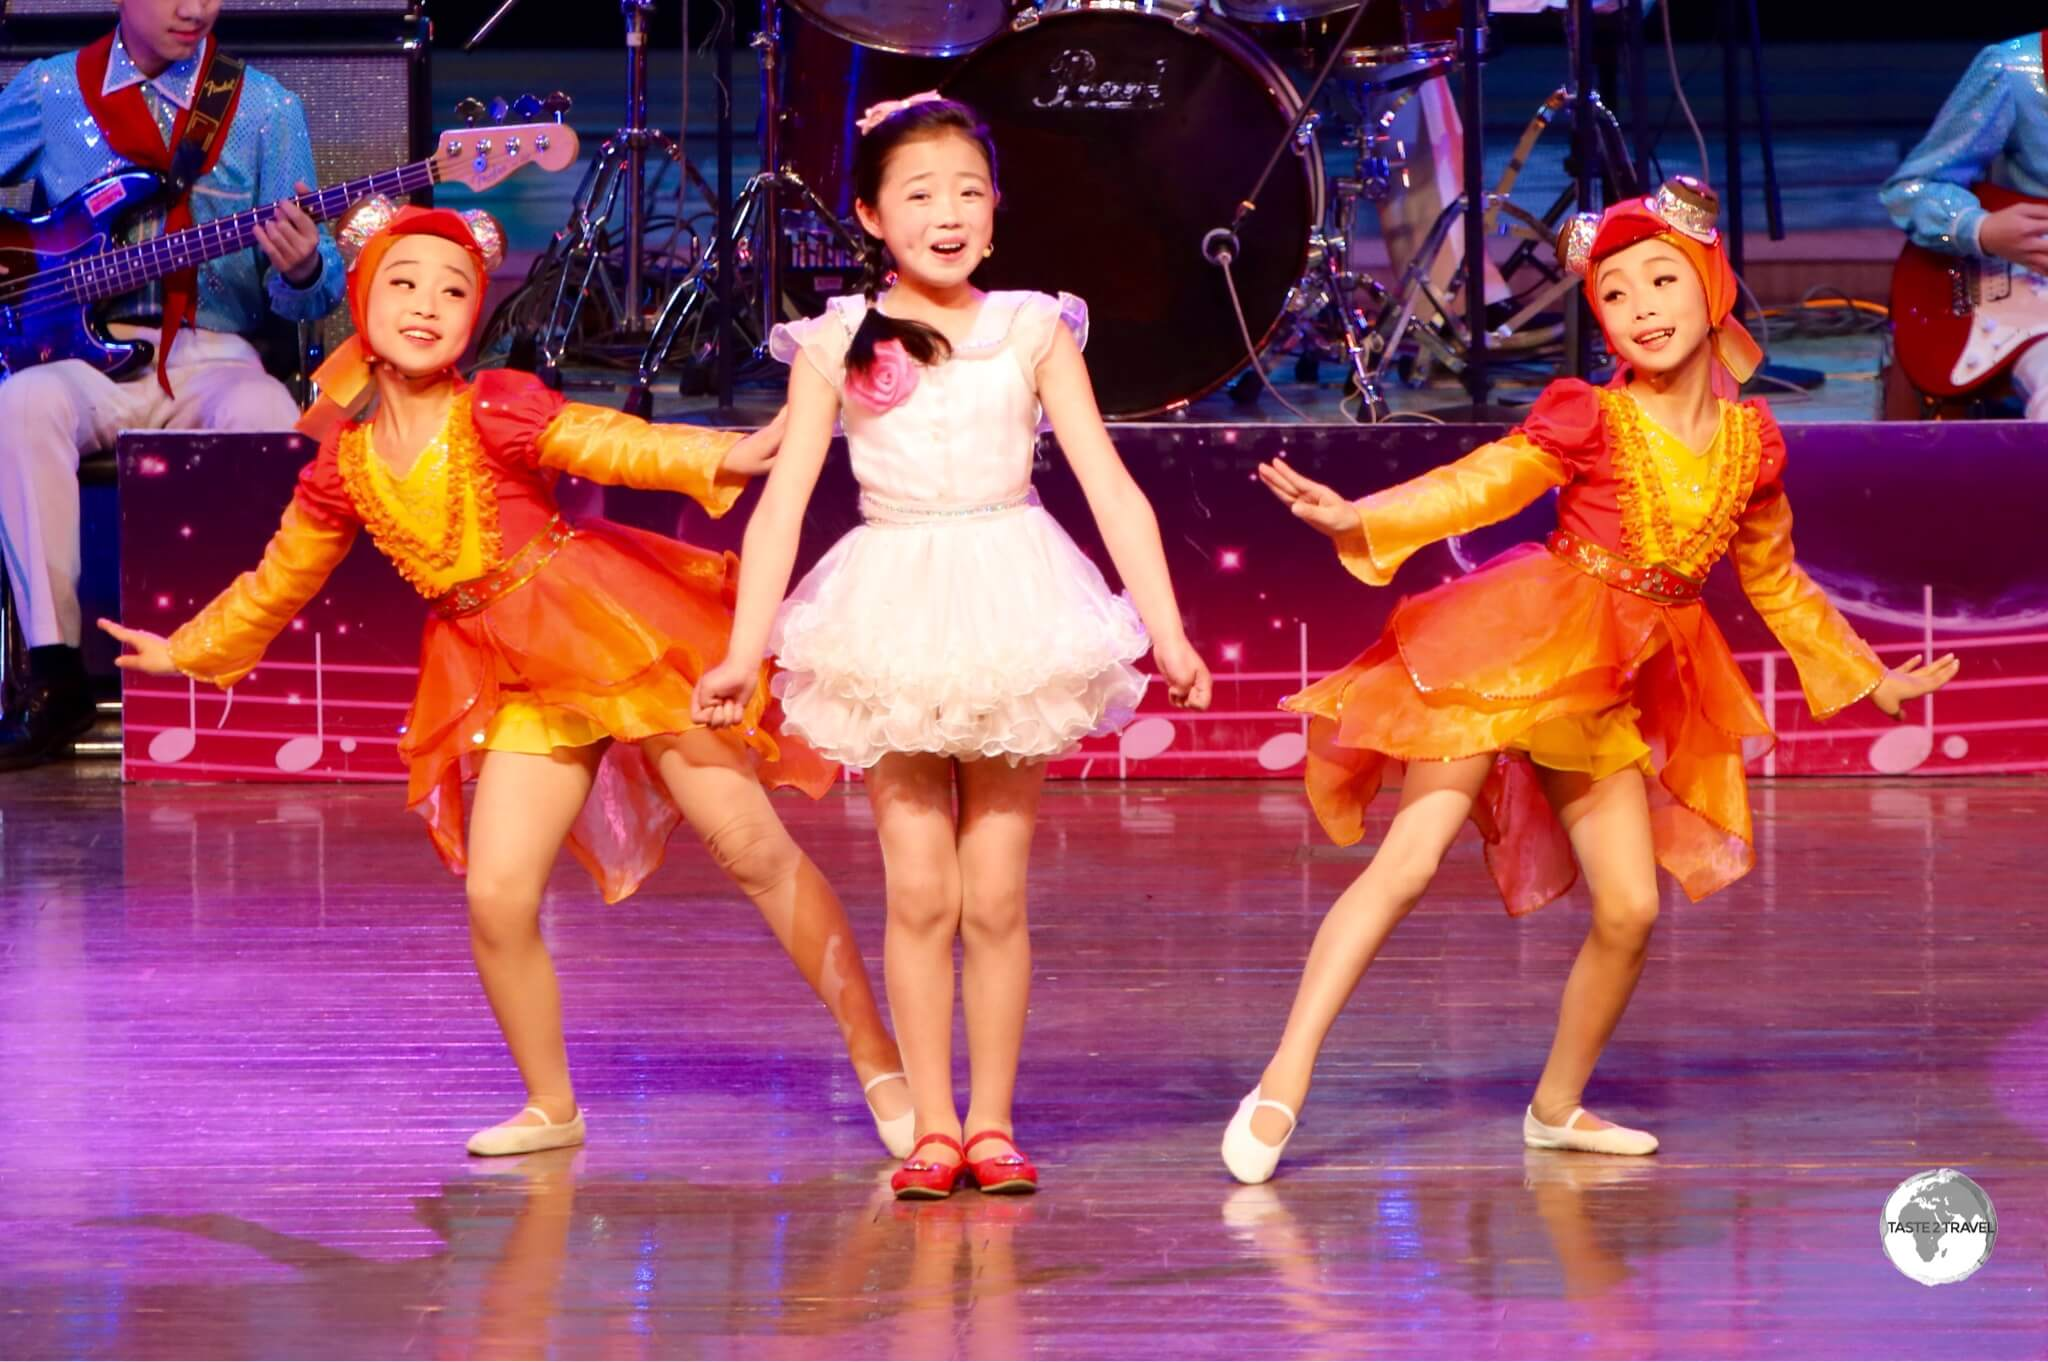 Performers at the Mangyongdae Children's Palace in Pyongyang.